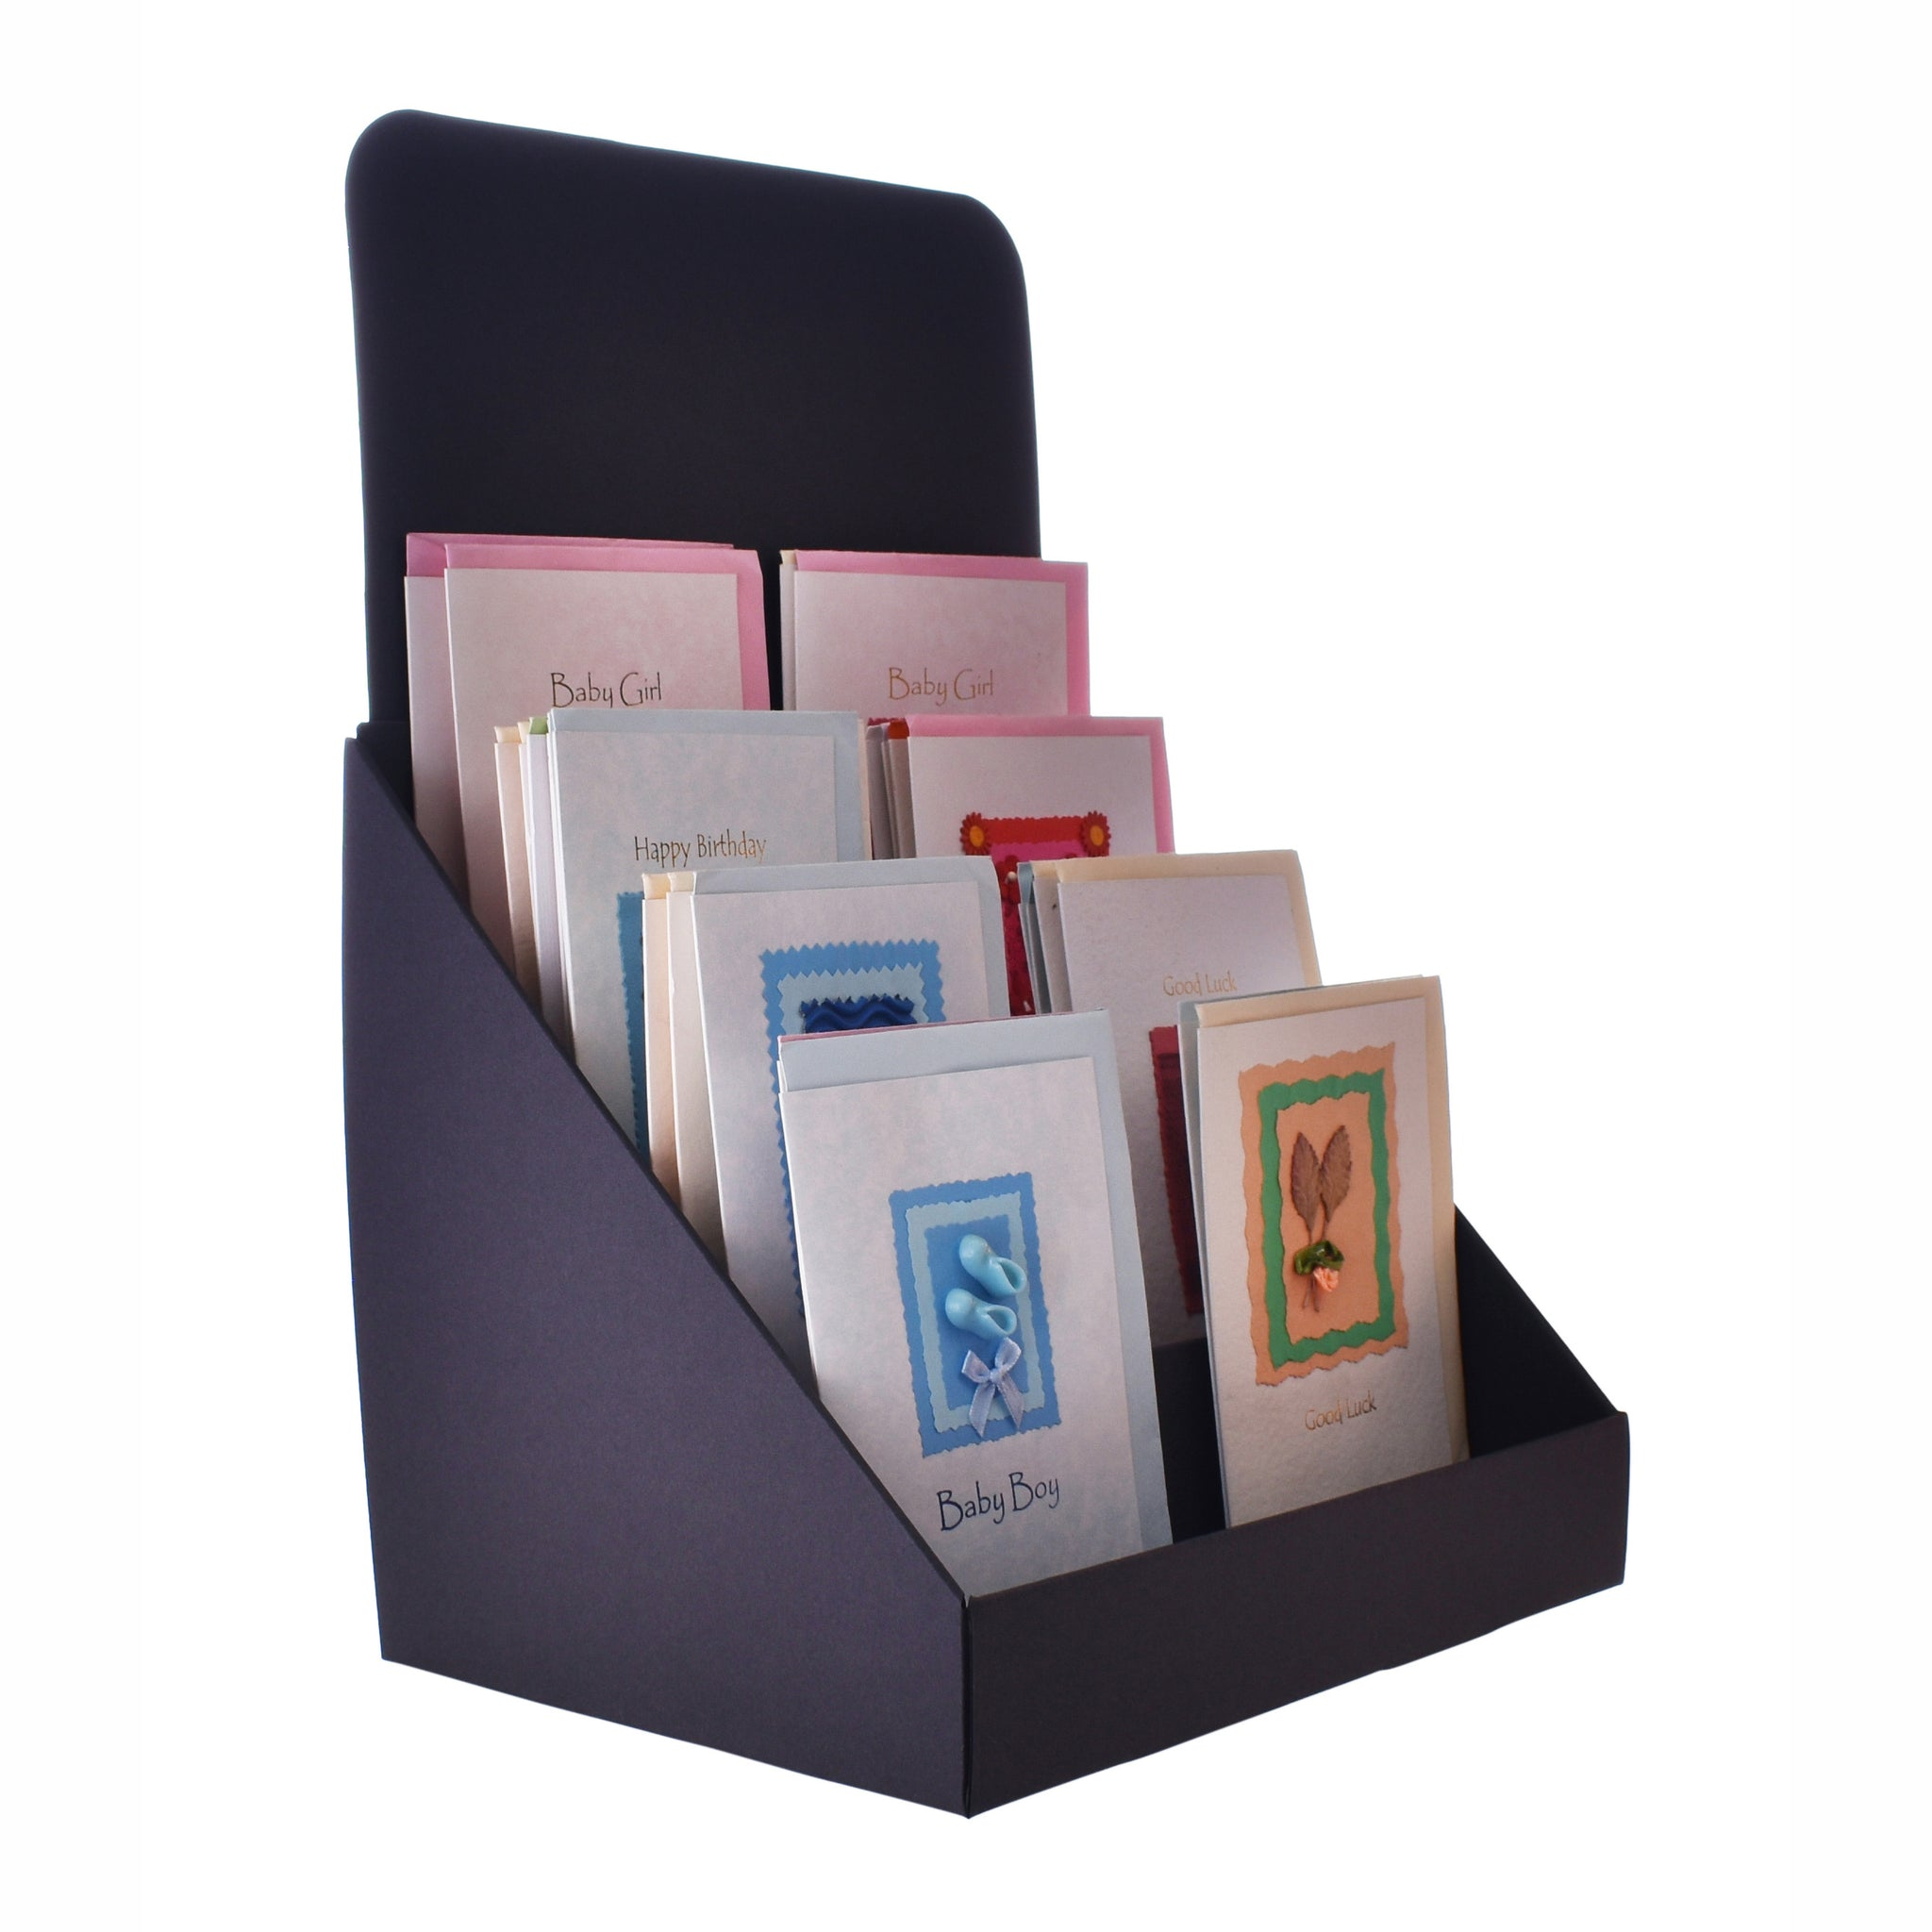 Compact greeting card display stand standstore compact 4 tier greeting card display stand m4hsunfo